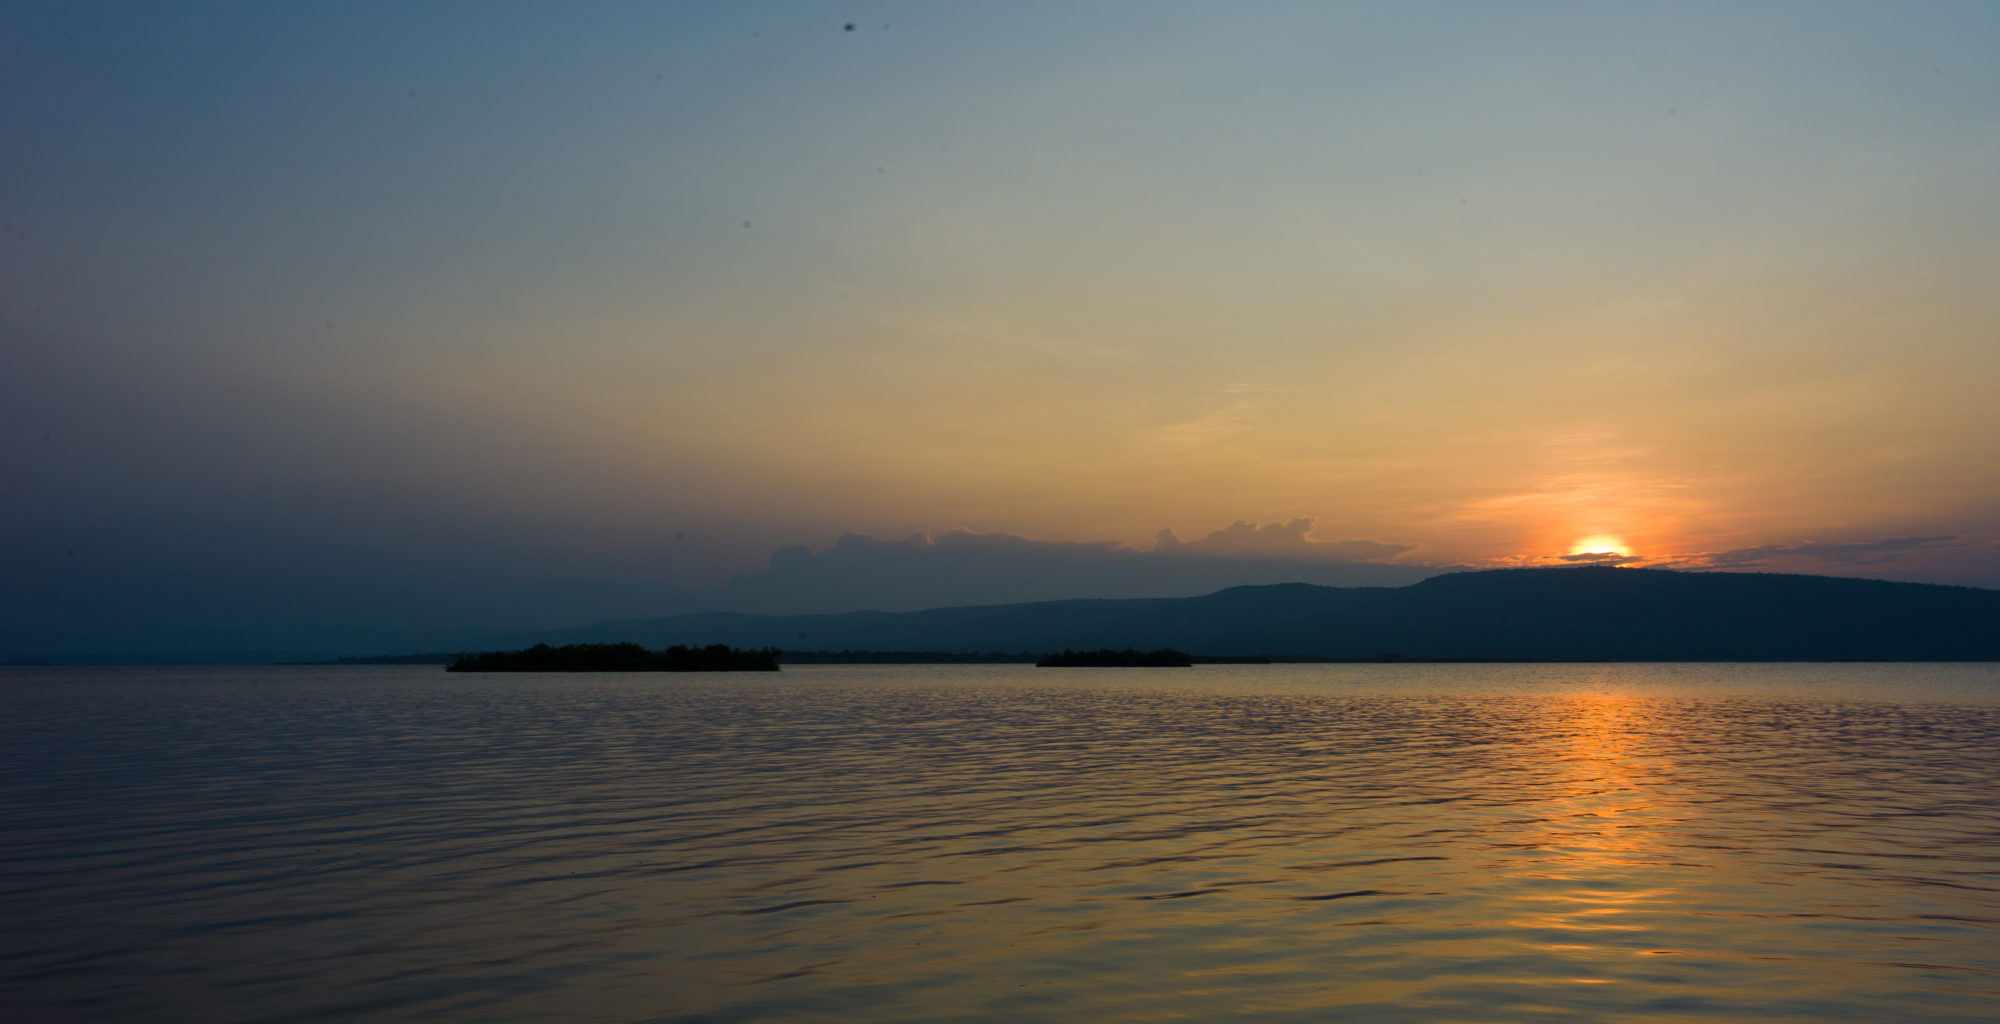 Sunset over an Akagera lake